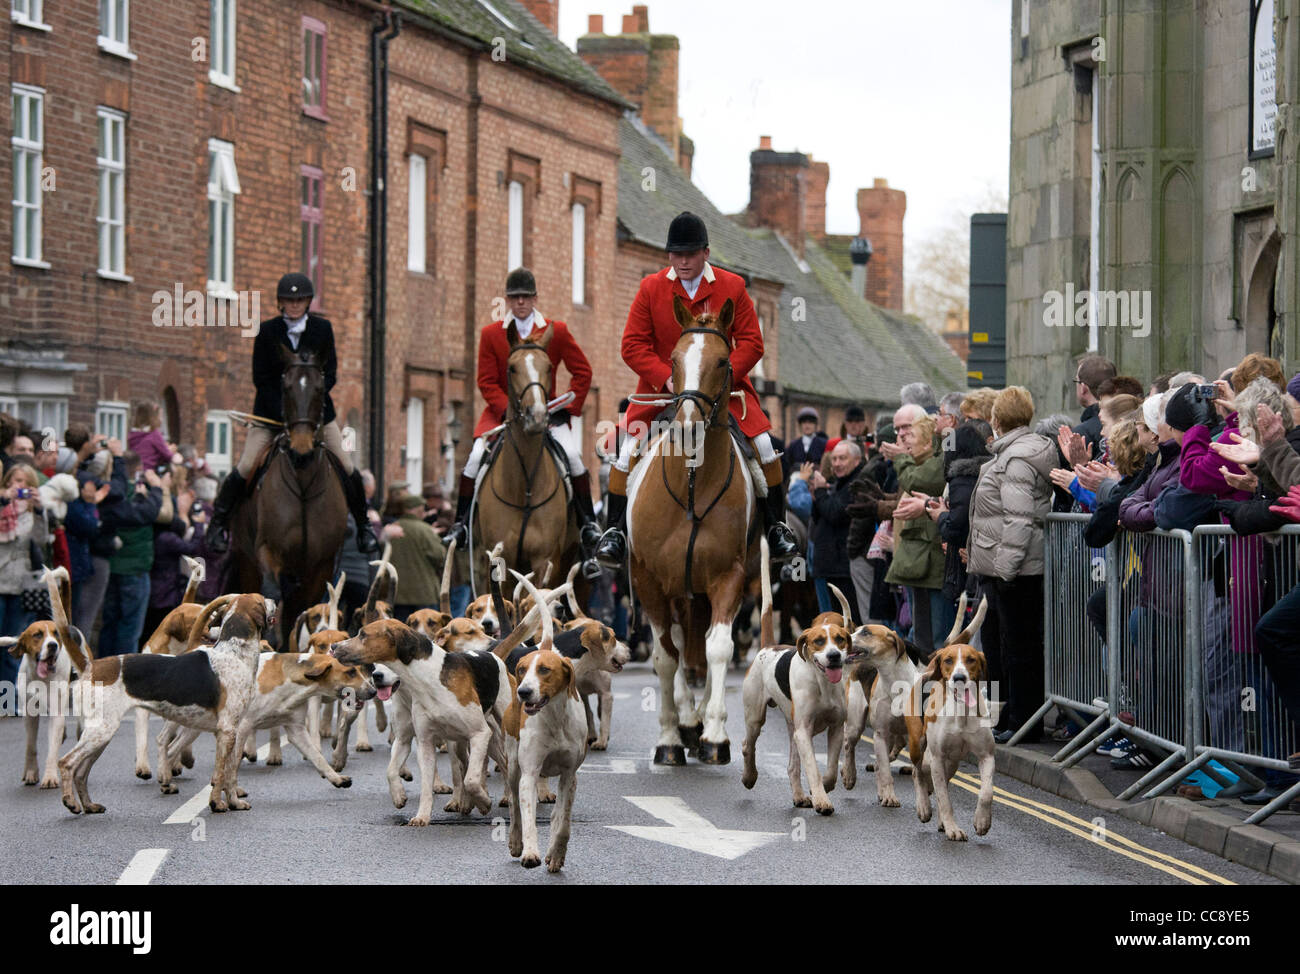 The annual  traditional hunt meet held in Market Bosworth square, Leicestershire on Boxing Day. - Stock Image